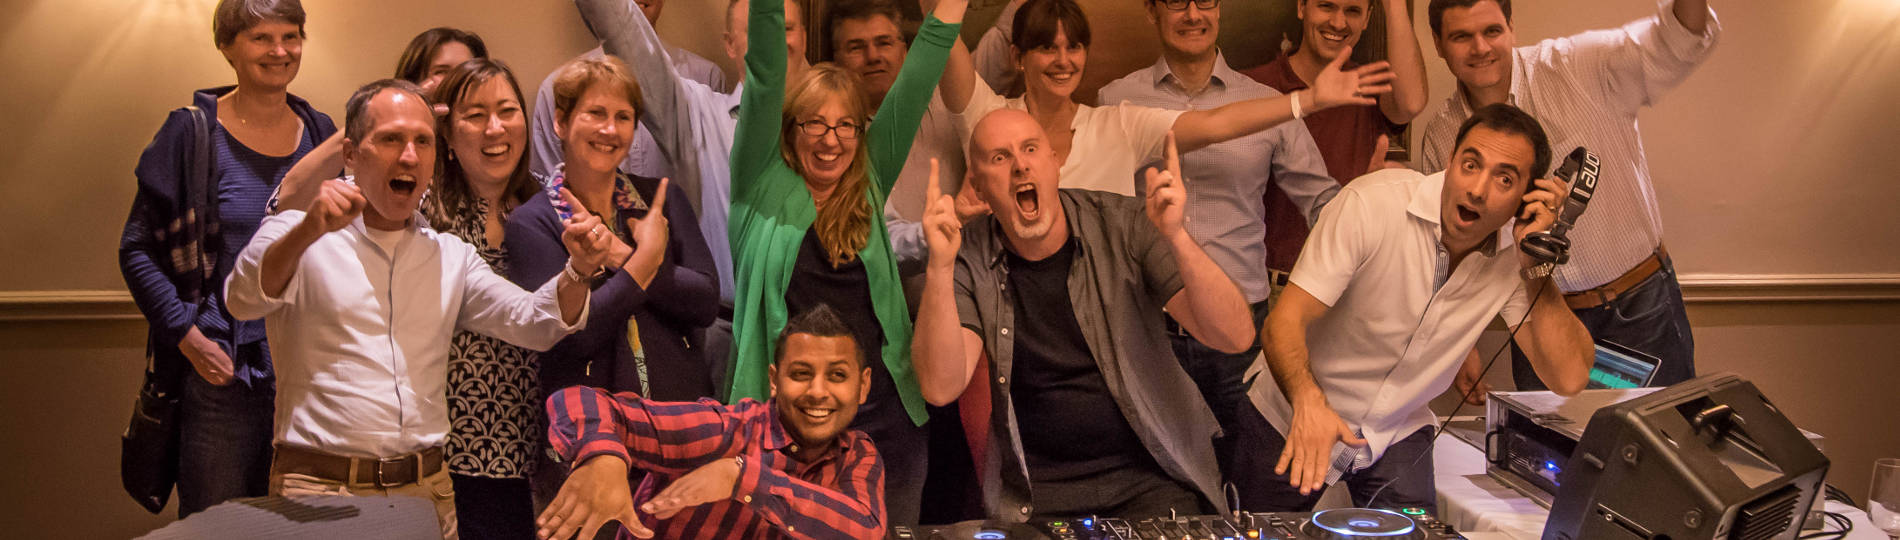 Make your very own mix from scratch with this team building event with a twist